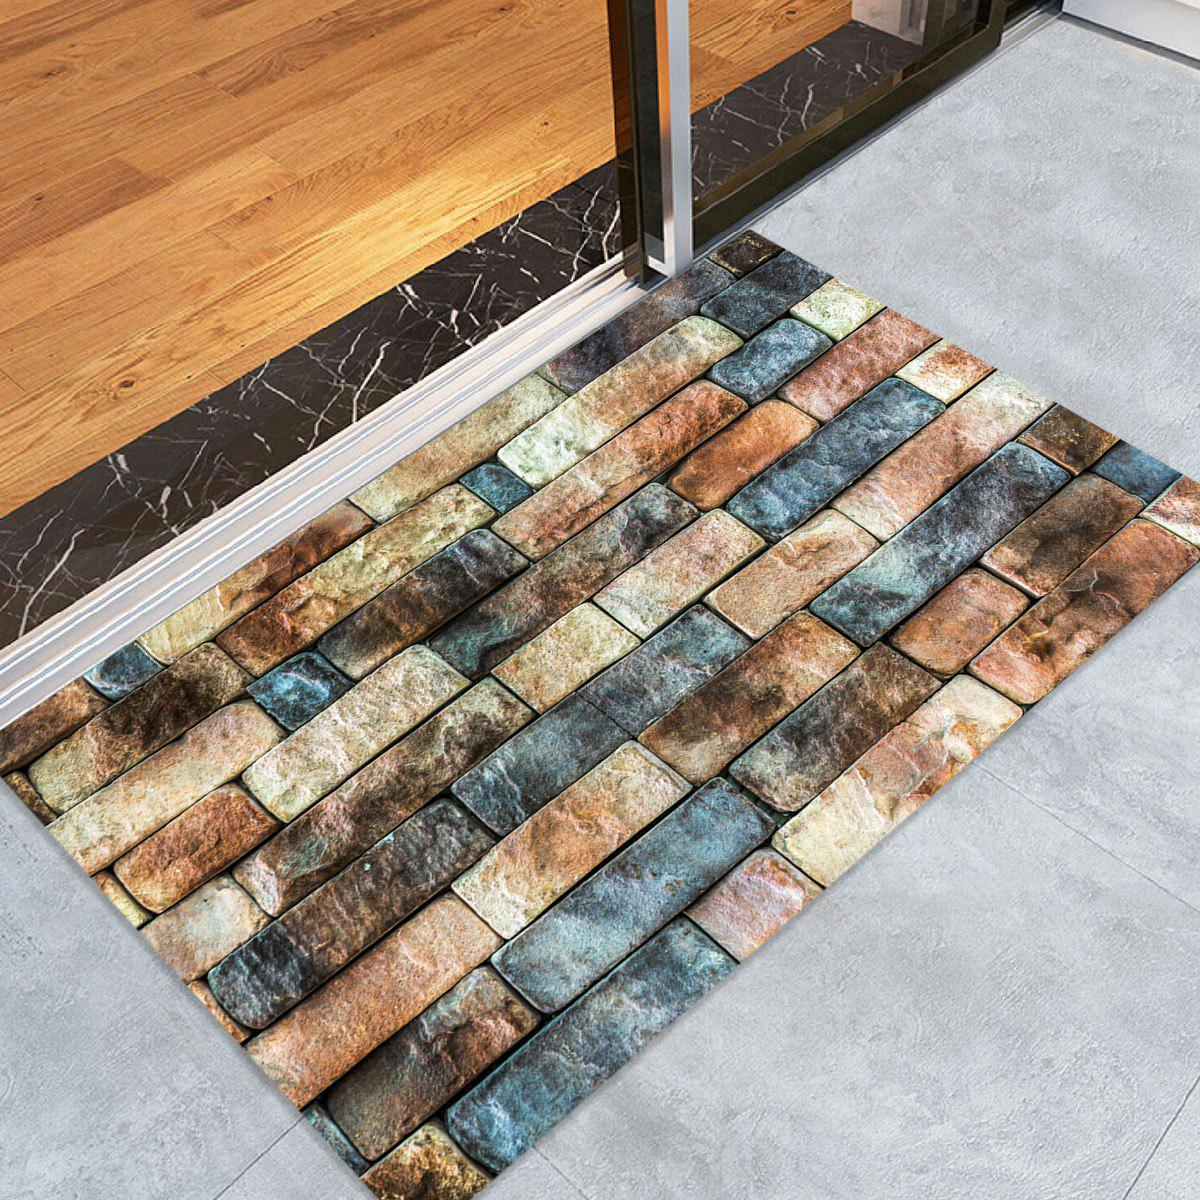 Brick Wall Pattern Floor Area Rug - COLORMIX W24 INCH * L35.5 INCH